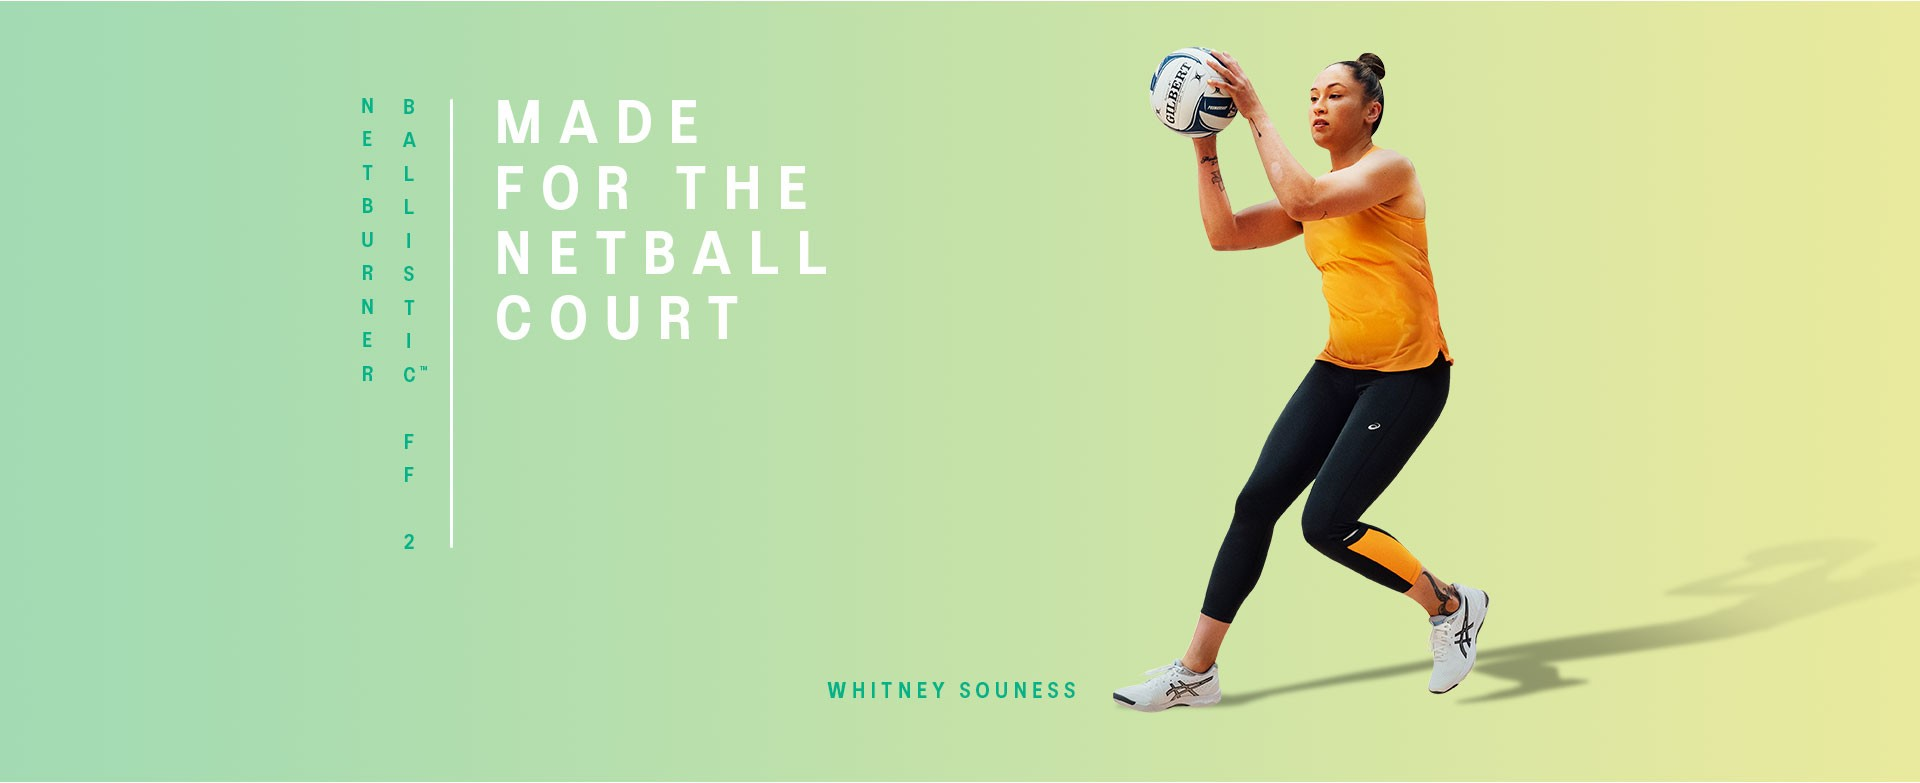 Made For the Netball Court